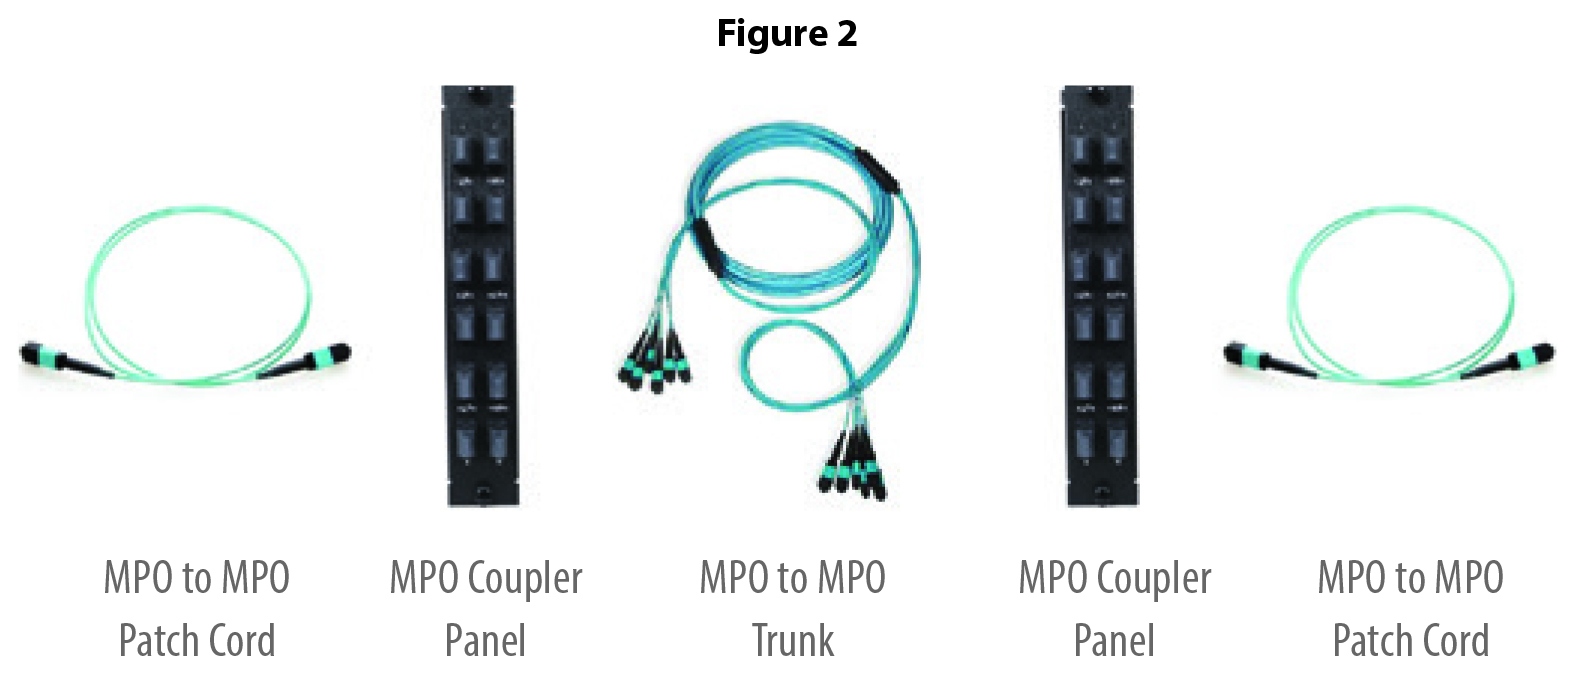 Parallel Link - MPO Cable Connectivity